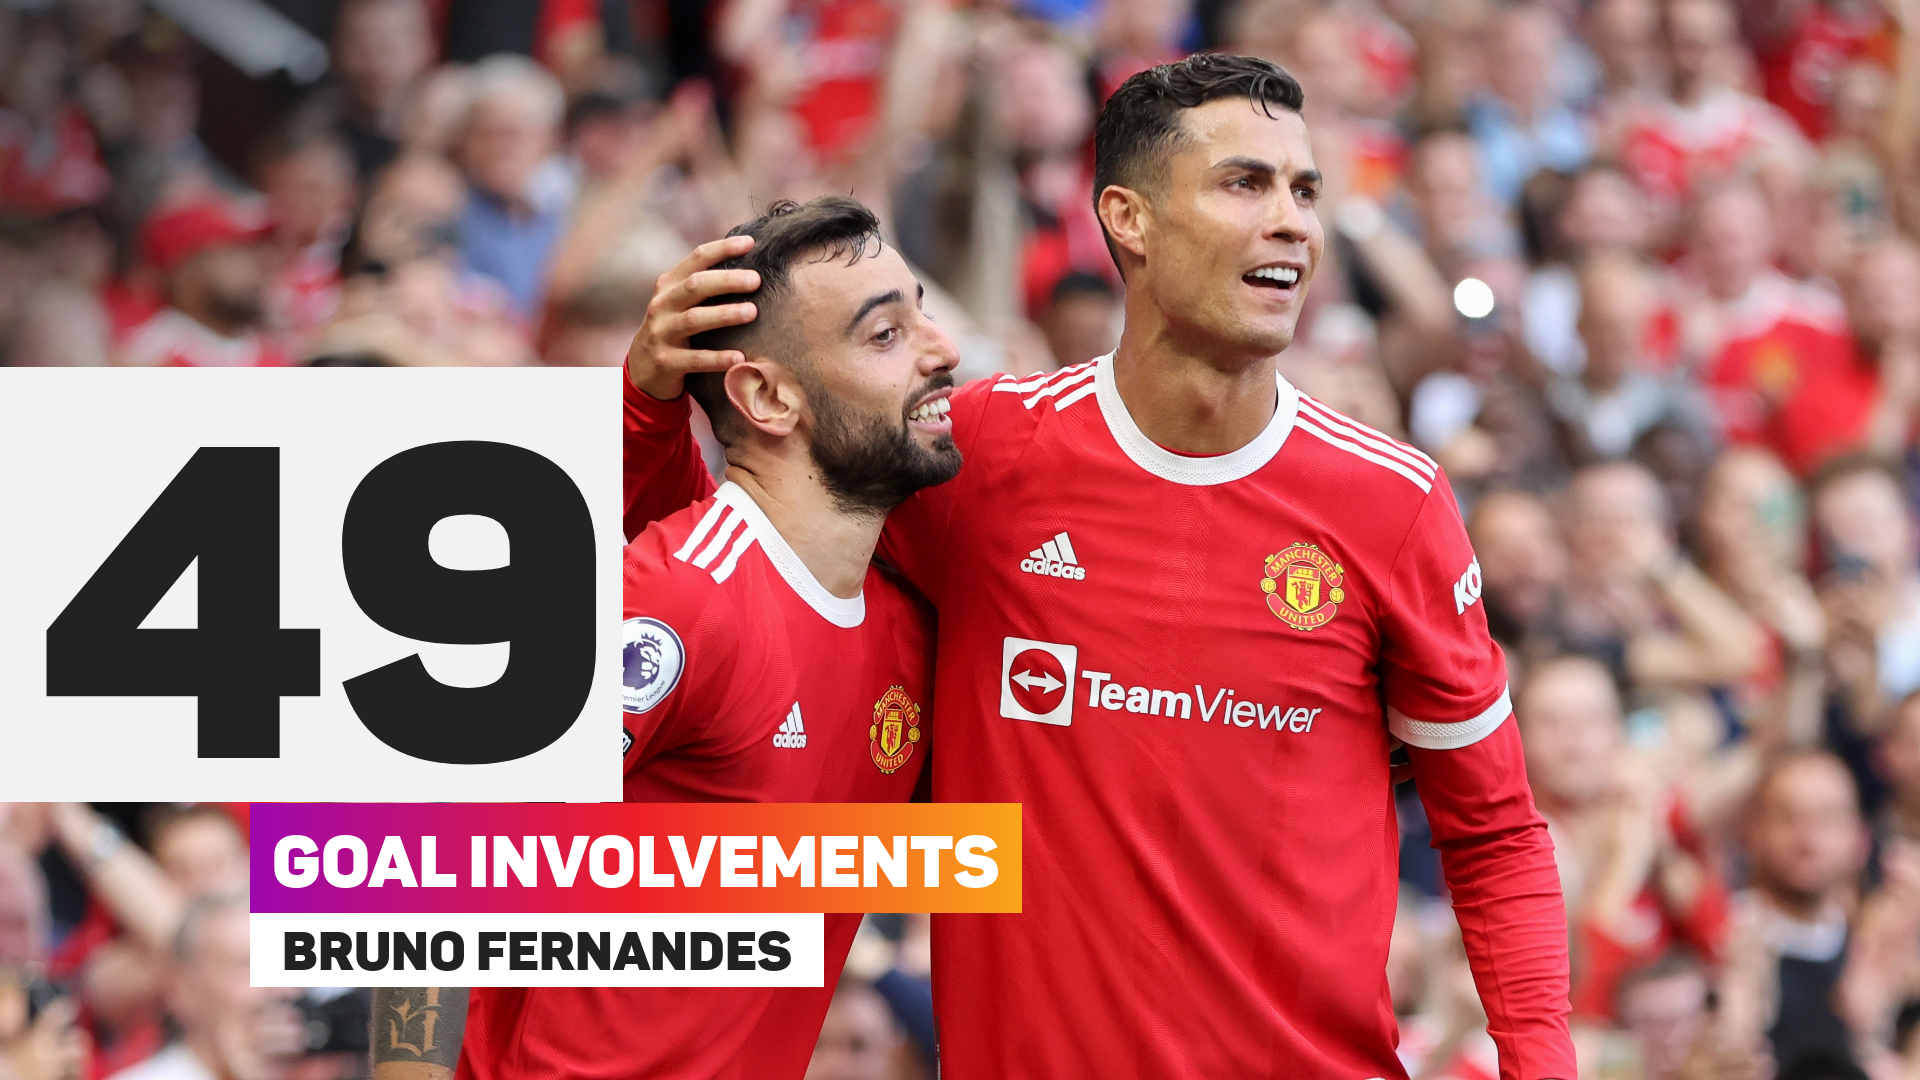 Bruno Fernandes has 49 Premier League goal involvements to his name